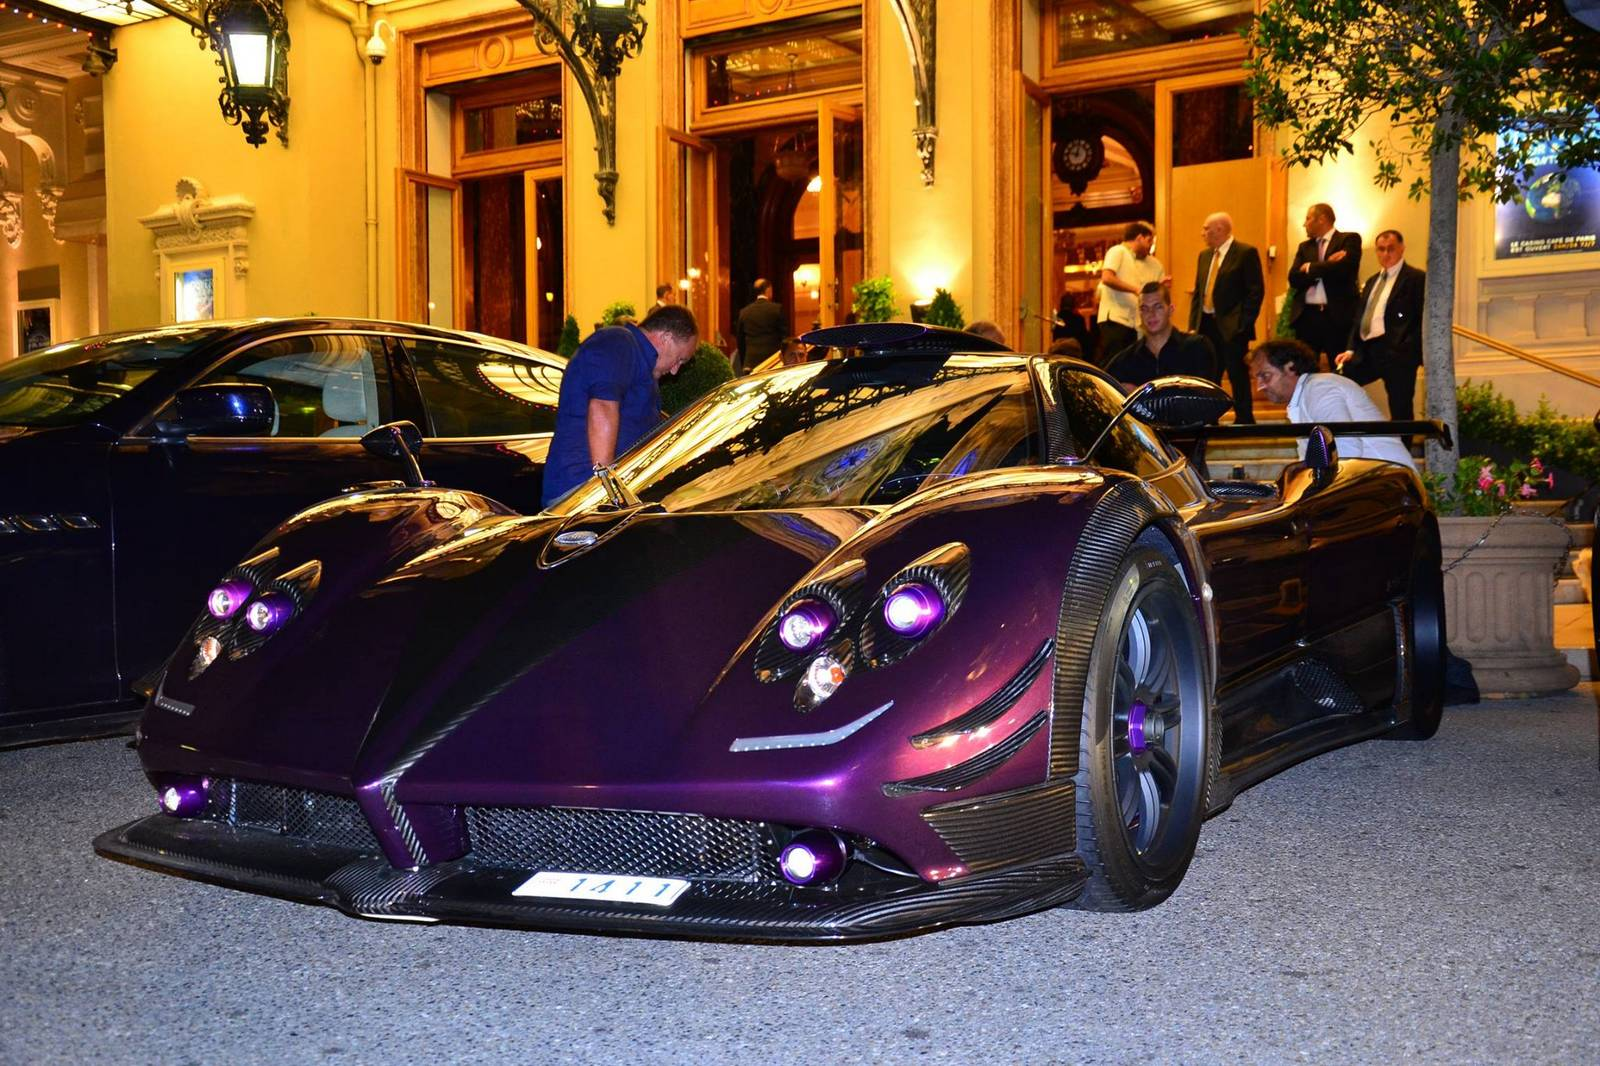 Gallery Pagani Zonda 760 Lh By Night In Monaco Gtspirit